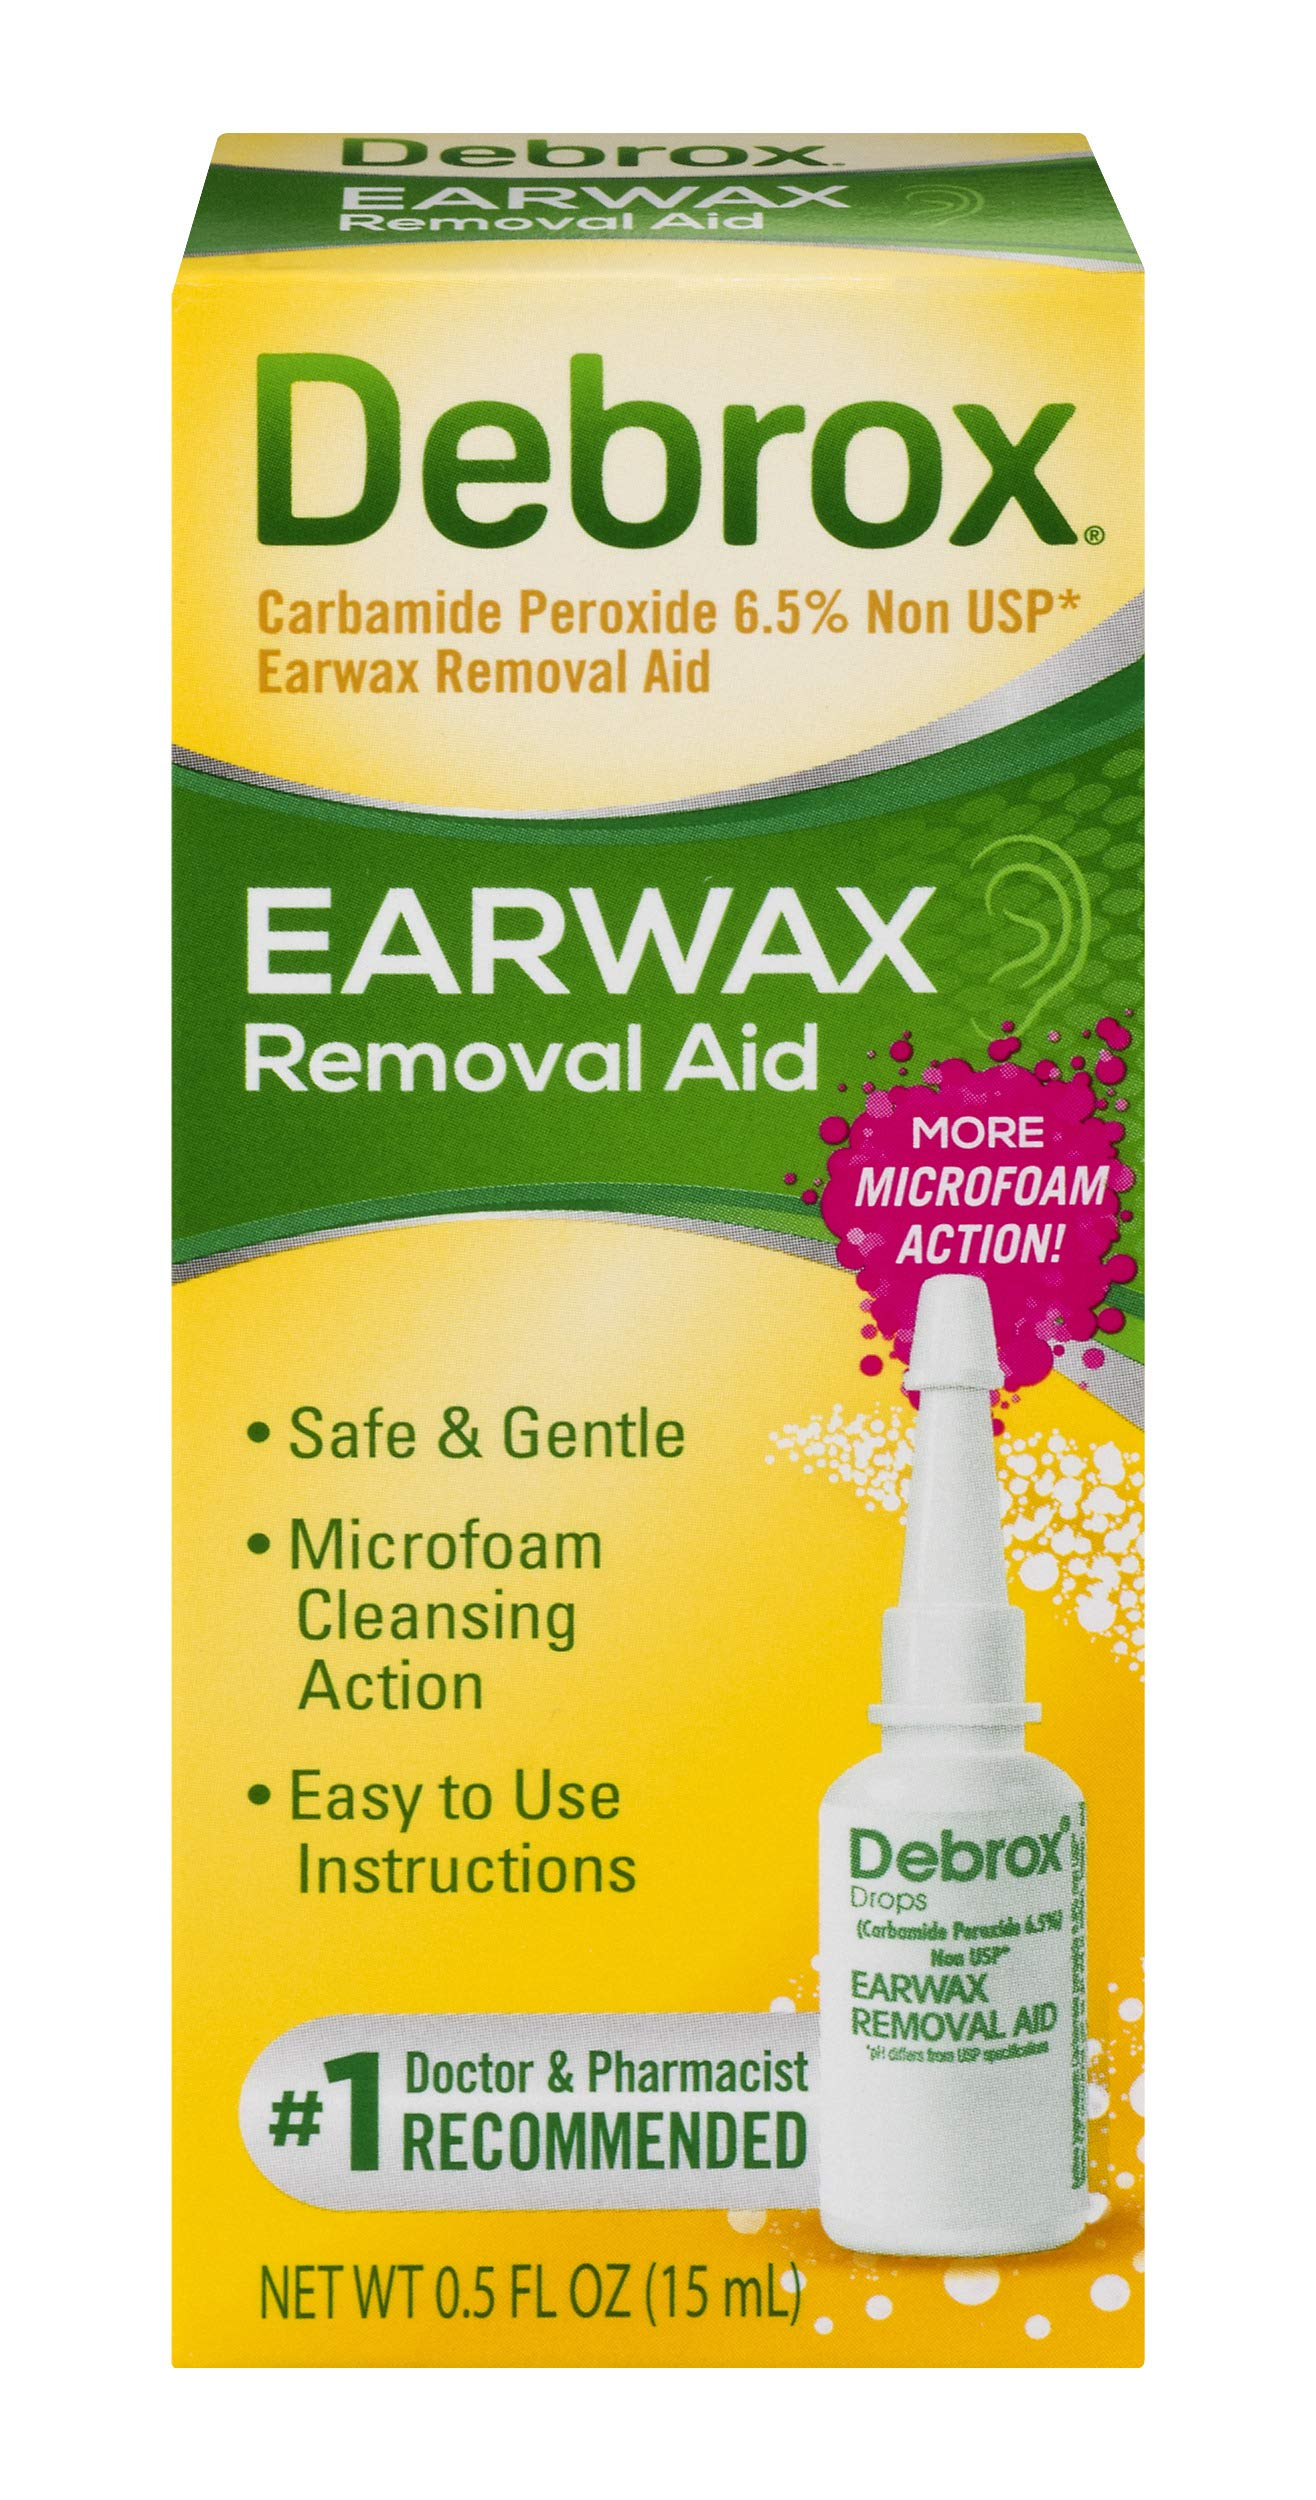 Debrox Earwax Removal Aid Drops | 0.5 oz | Removes Earwax and Cleanses Ear